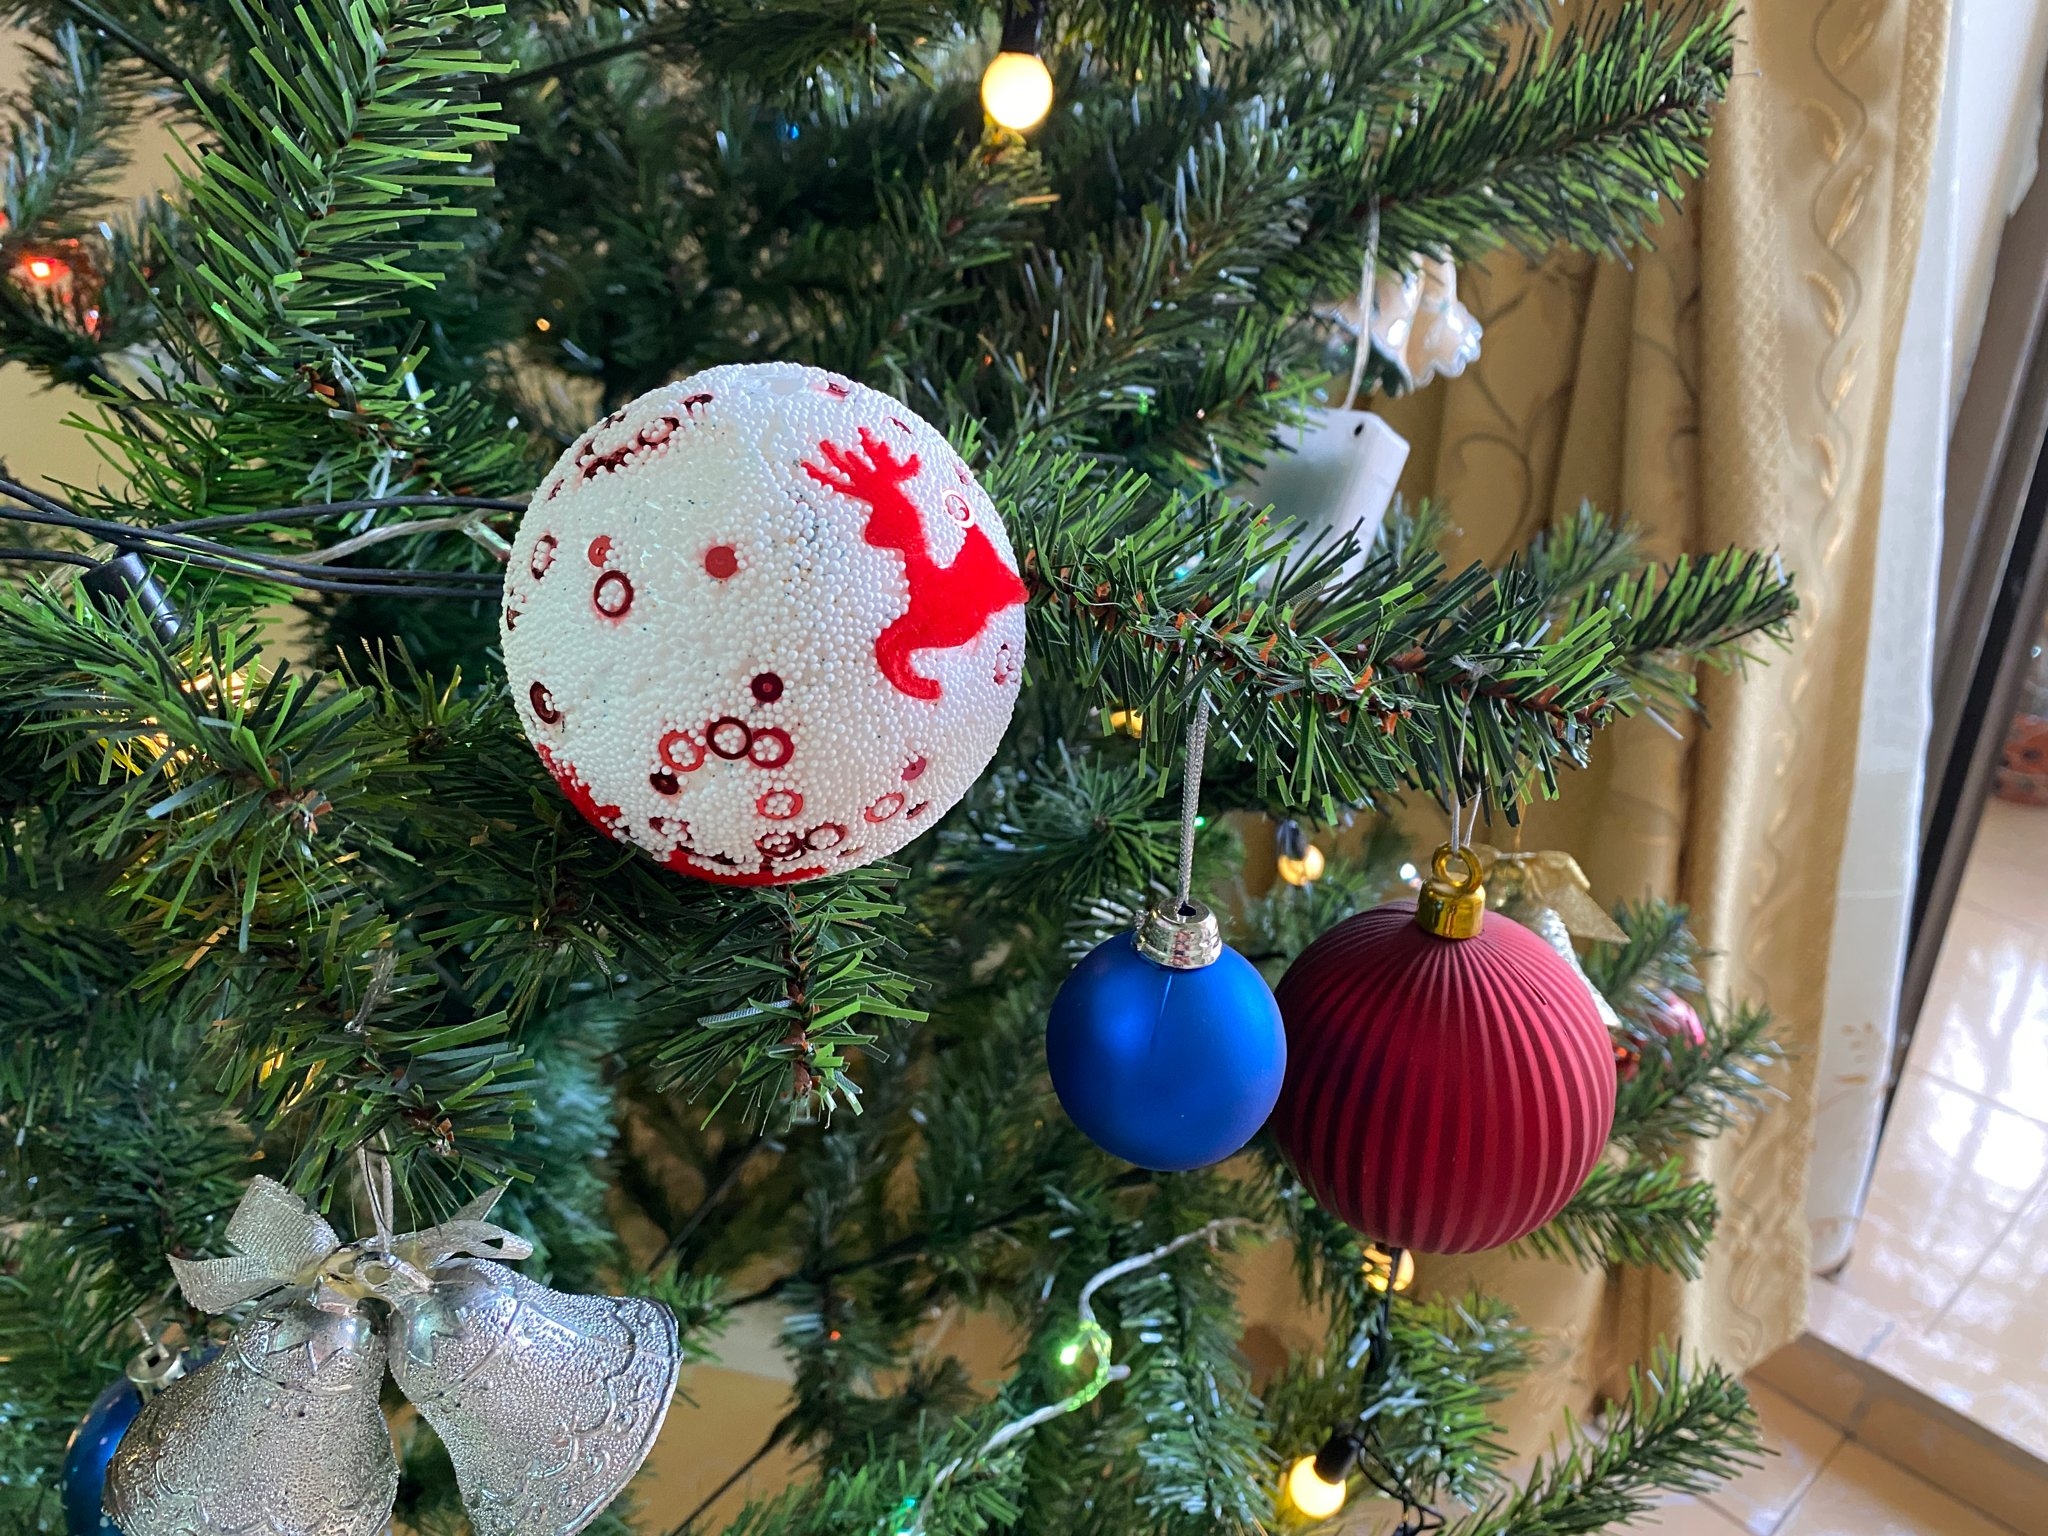 Invite brothers to show off Christmas tree photos